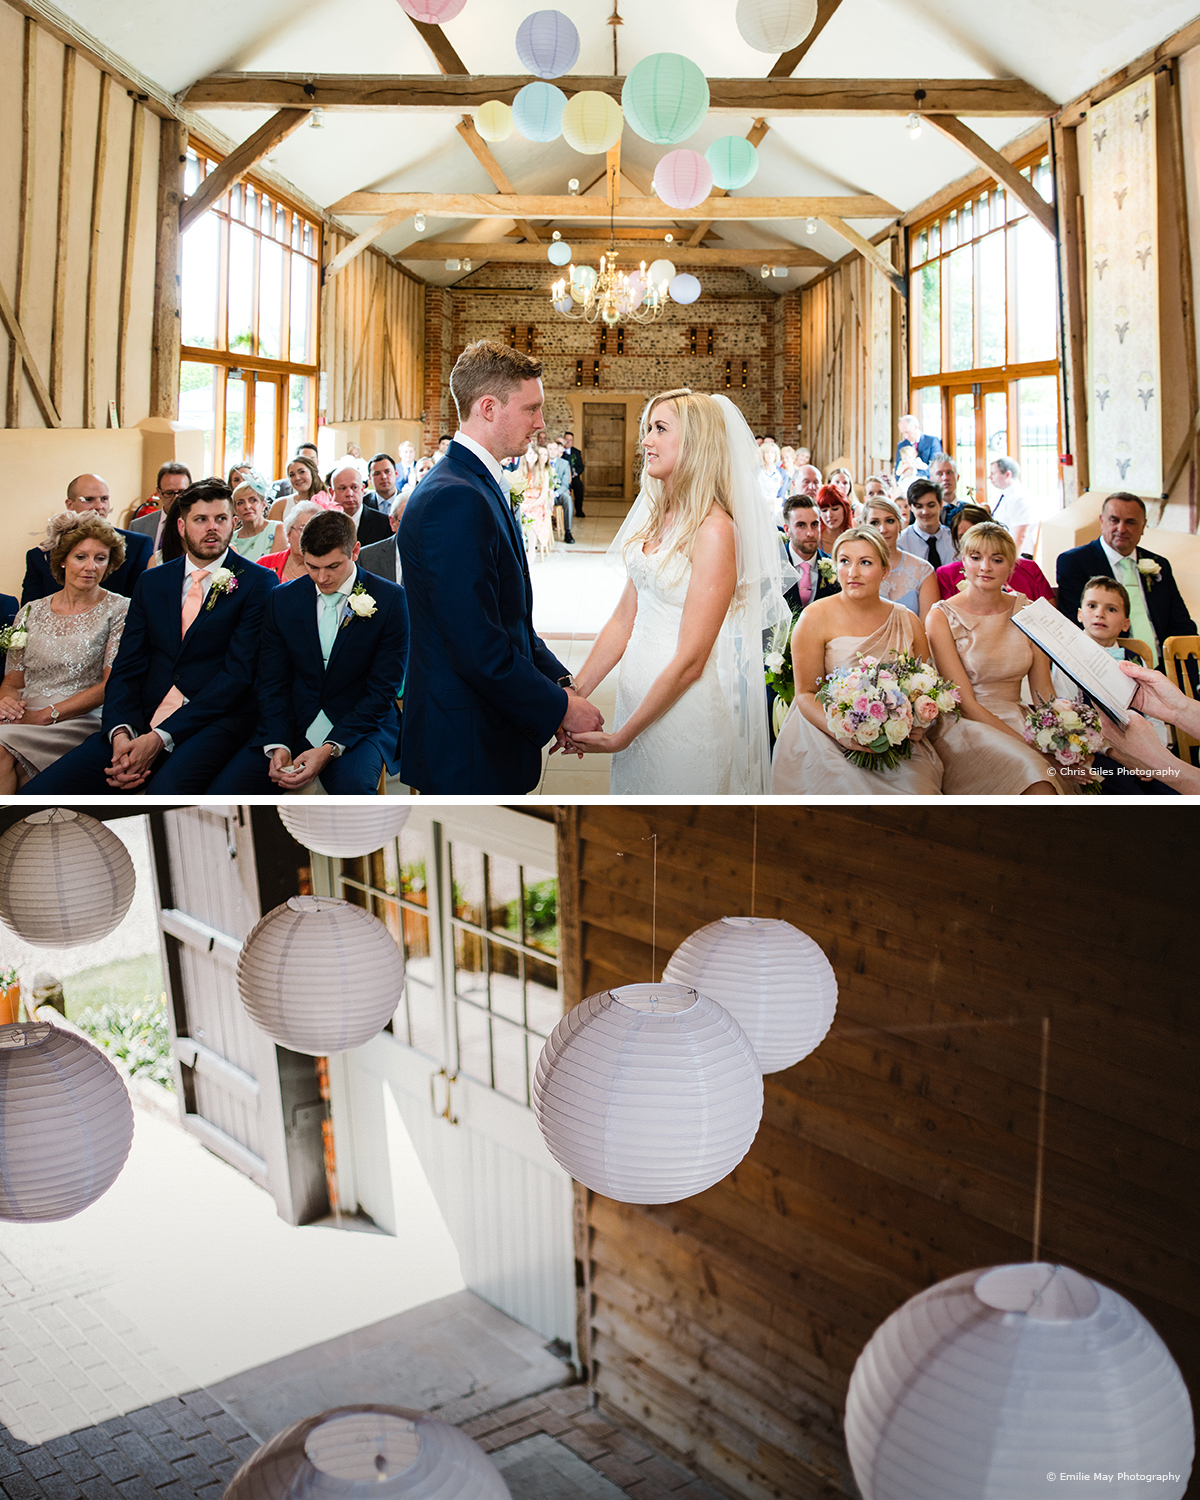 7 barn wedding decoration ideas for a spring wedding paper lanterns wedding ideas junglespirit Choice Image